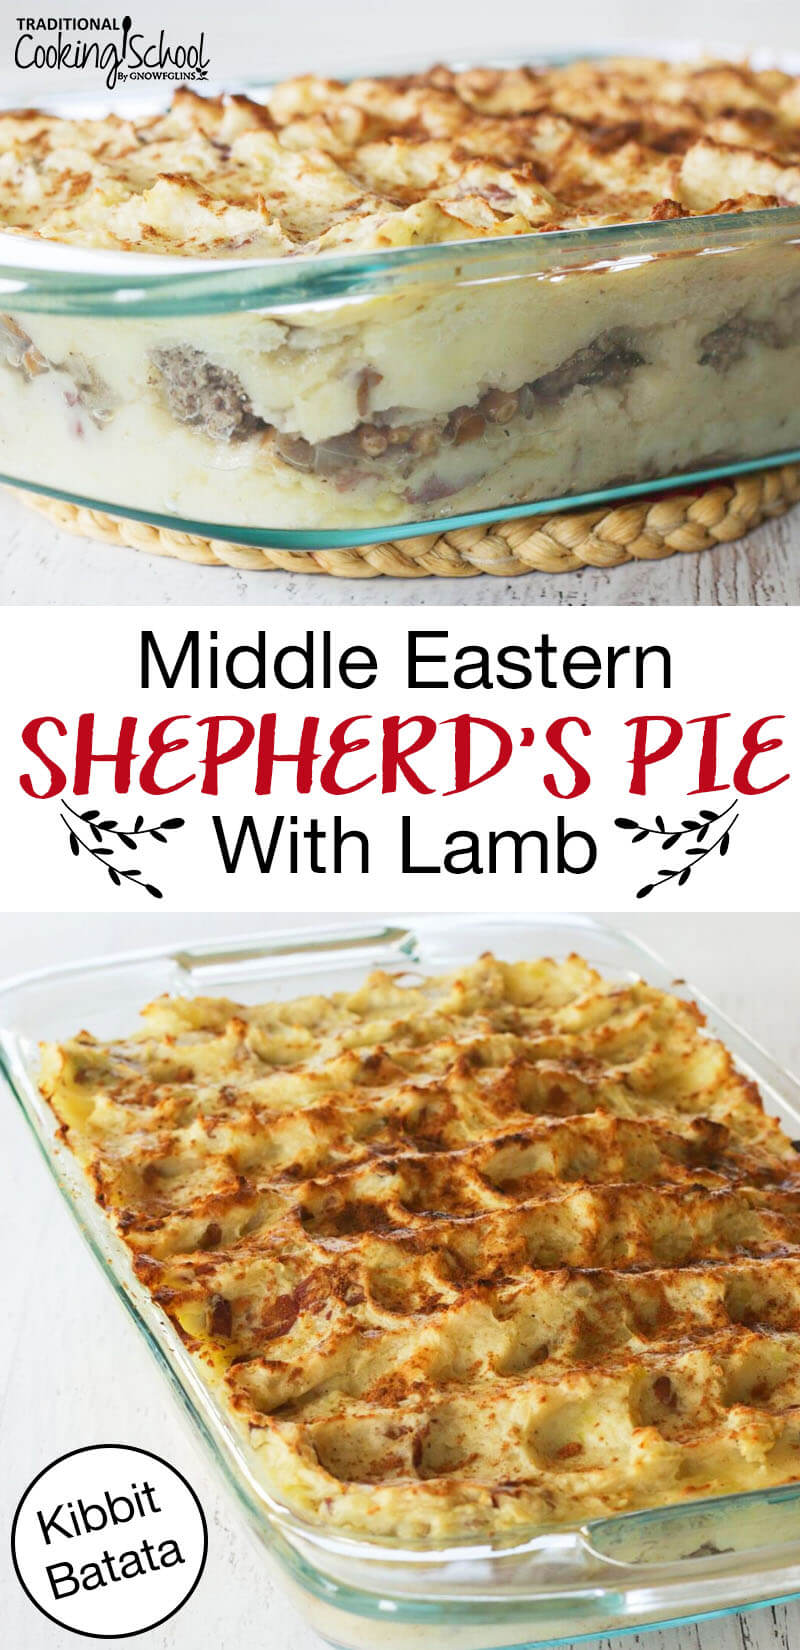 "photo collage of shepherd's pie with a golden crispy top in a clear glass baking dish with text overlay: ""Middle Eastern Shepherd's Pie With Lamb"""